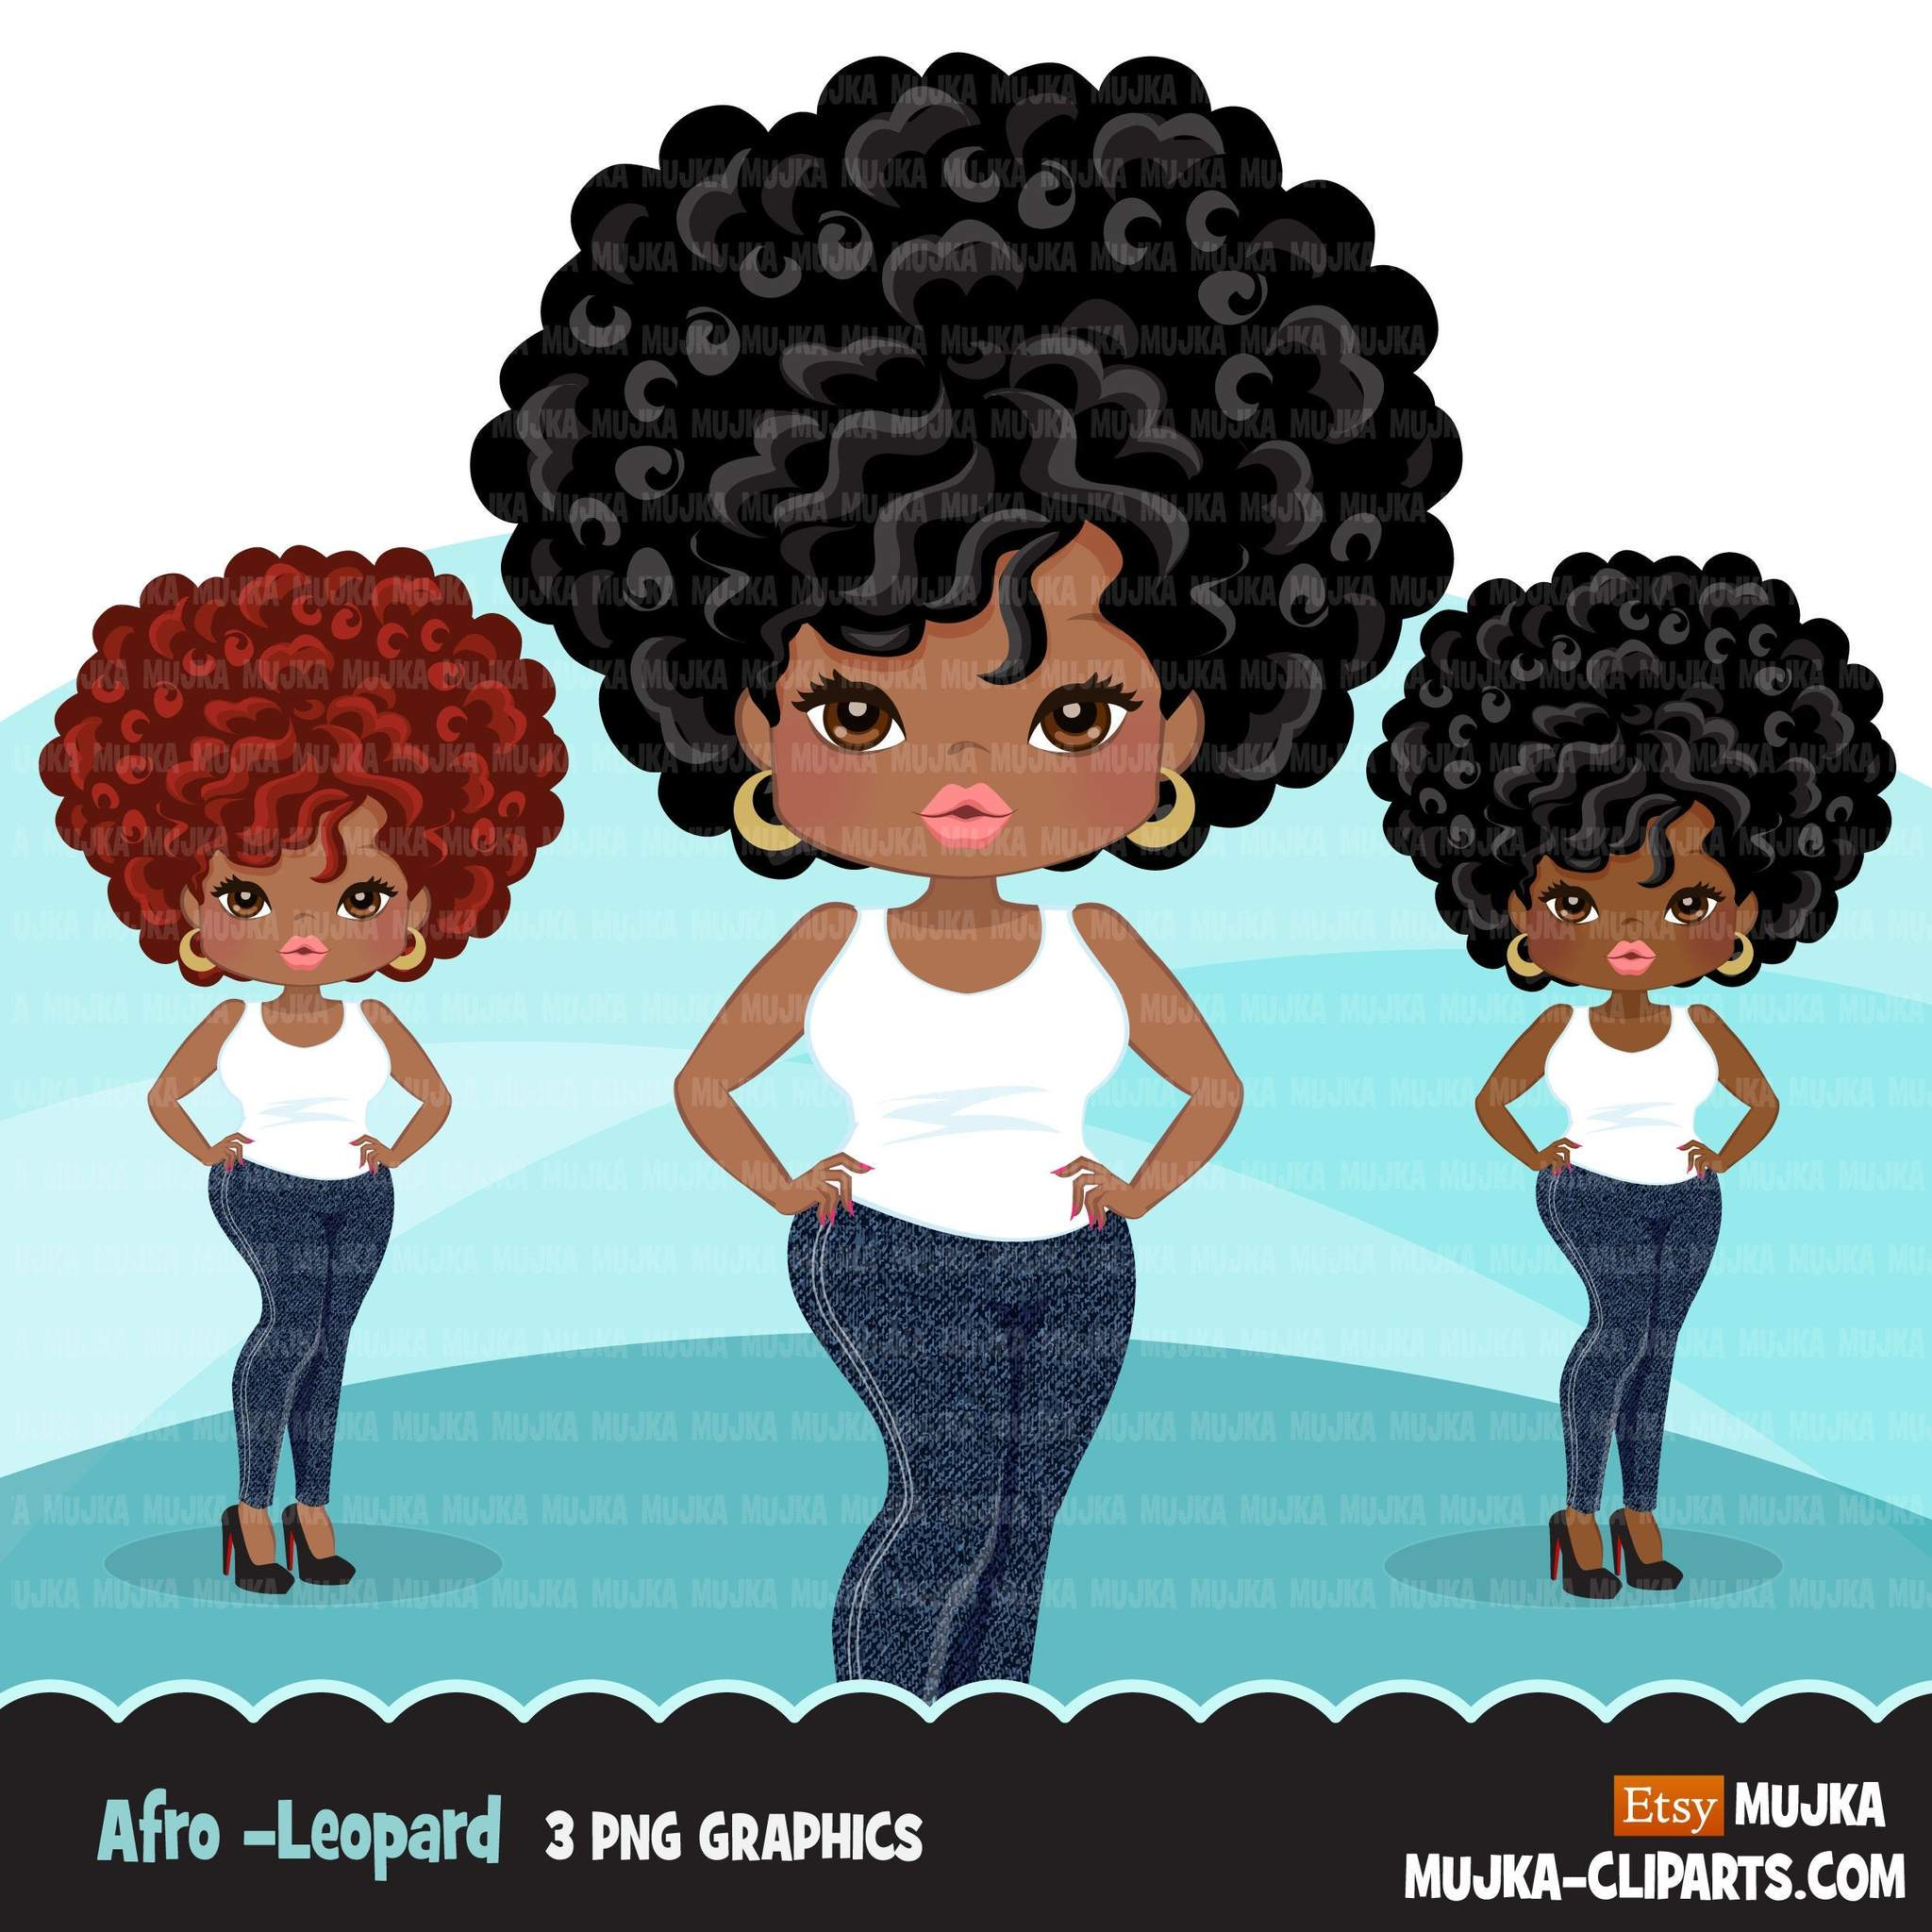 Afro black woman clipart with jeans and t.